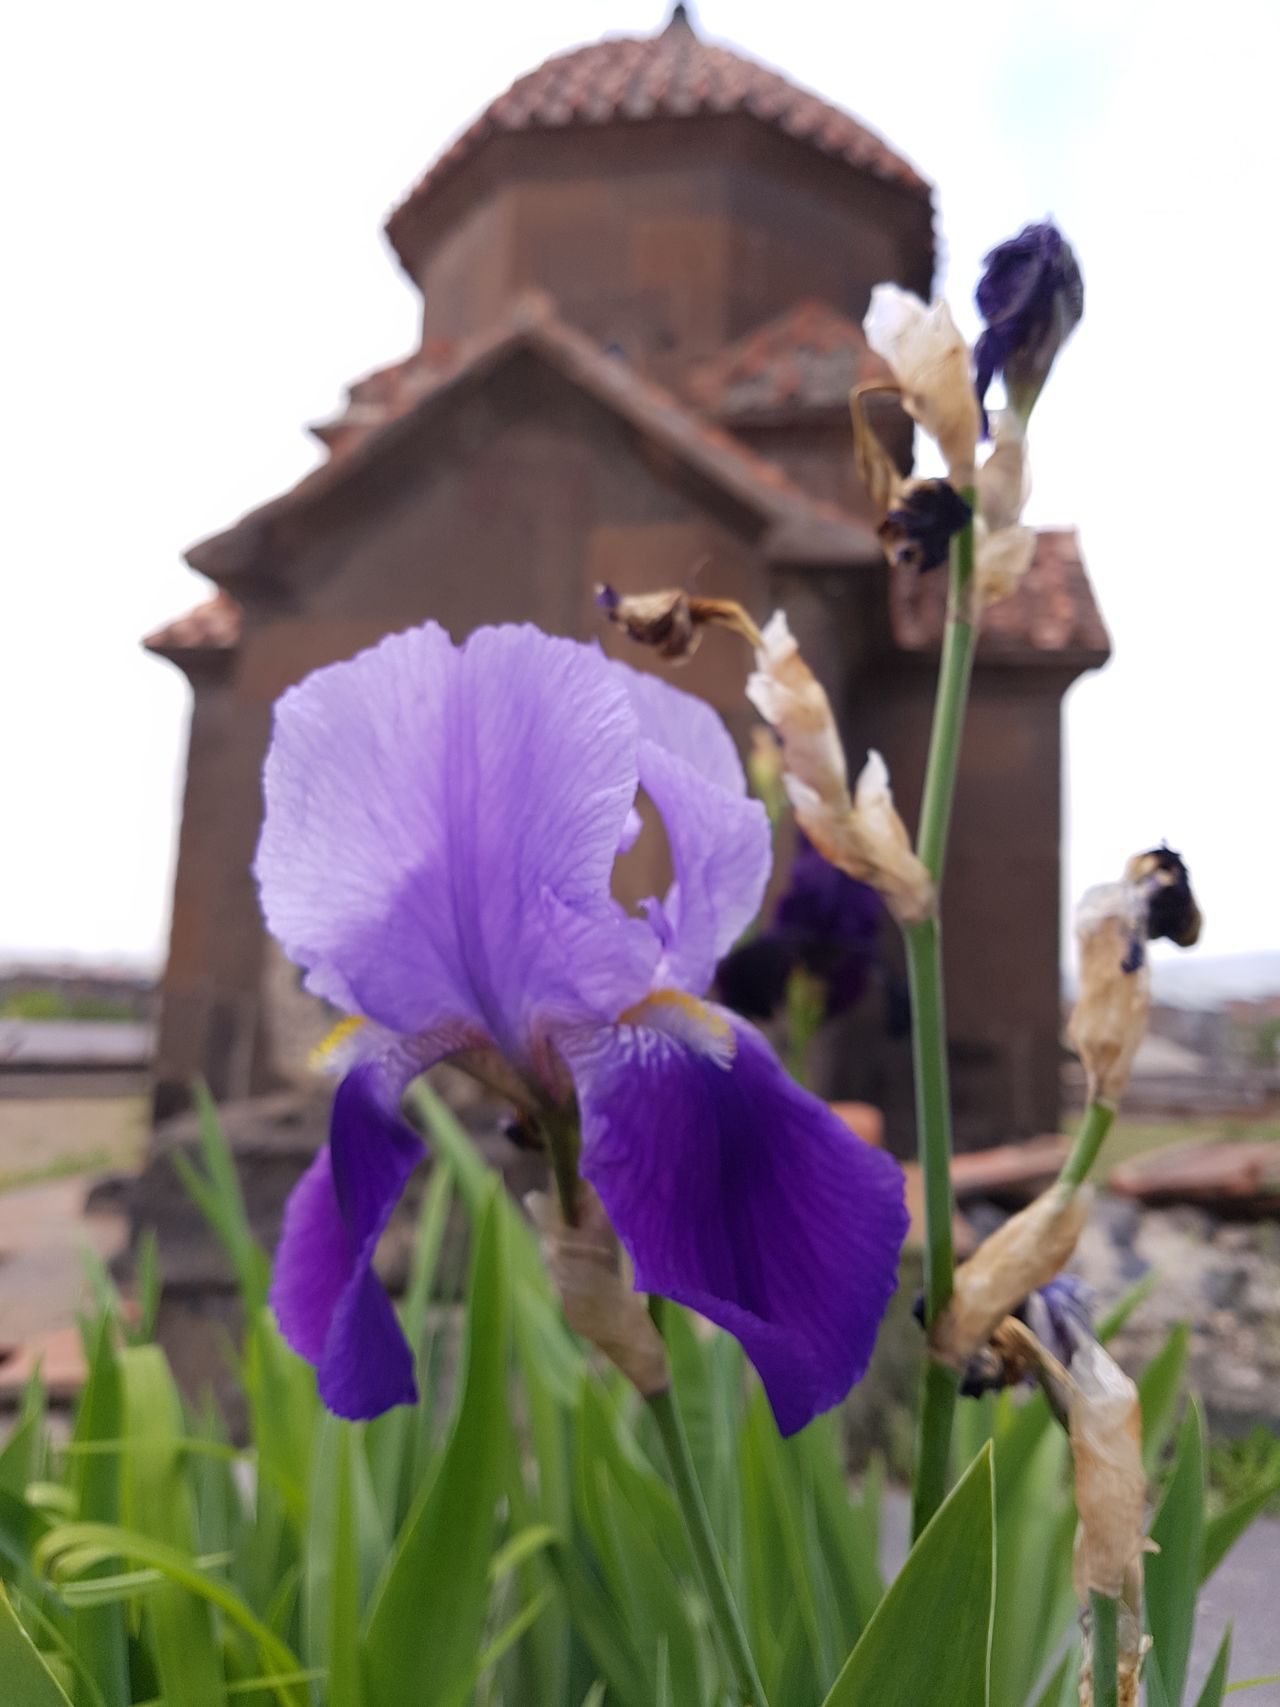 Flower Purple No People Day Architecture Vibrant Color Nature Outdoors Selective Focus Ancient Culture Christianity Armenian Church Architecture Single Flower